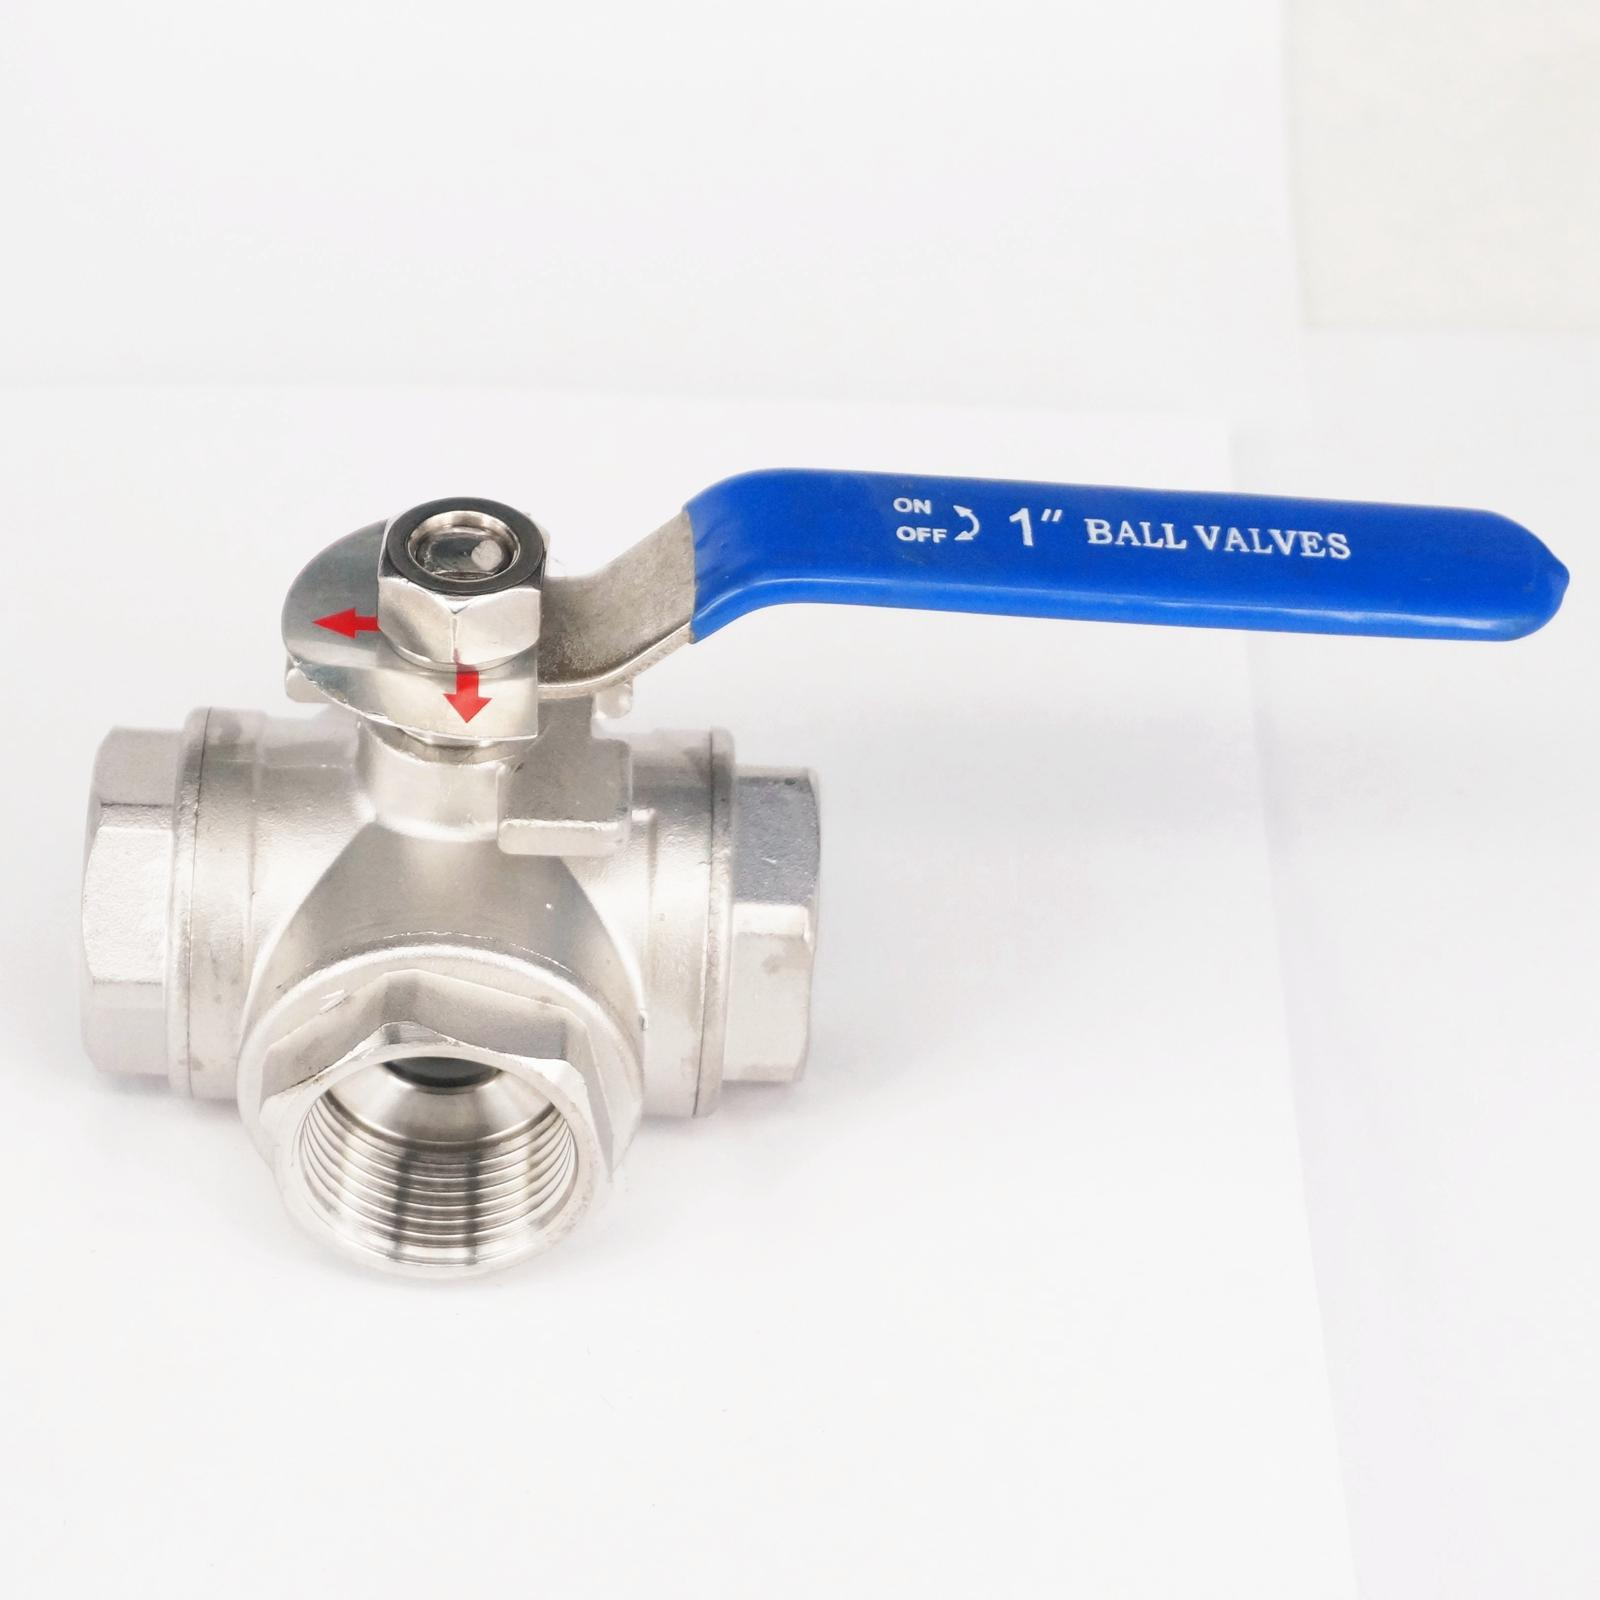 DN25 1 BSP Female Thread 304 Stainless Steel 3 Way T Port Ball Valve oil water air 229 PSI 1 2 bsp female 304 stainless steel flow control shut off needle valve 915 psi water gas oil